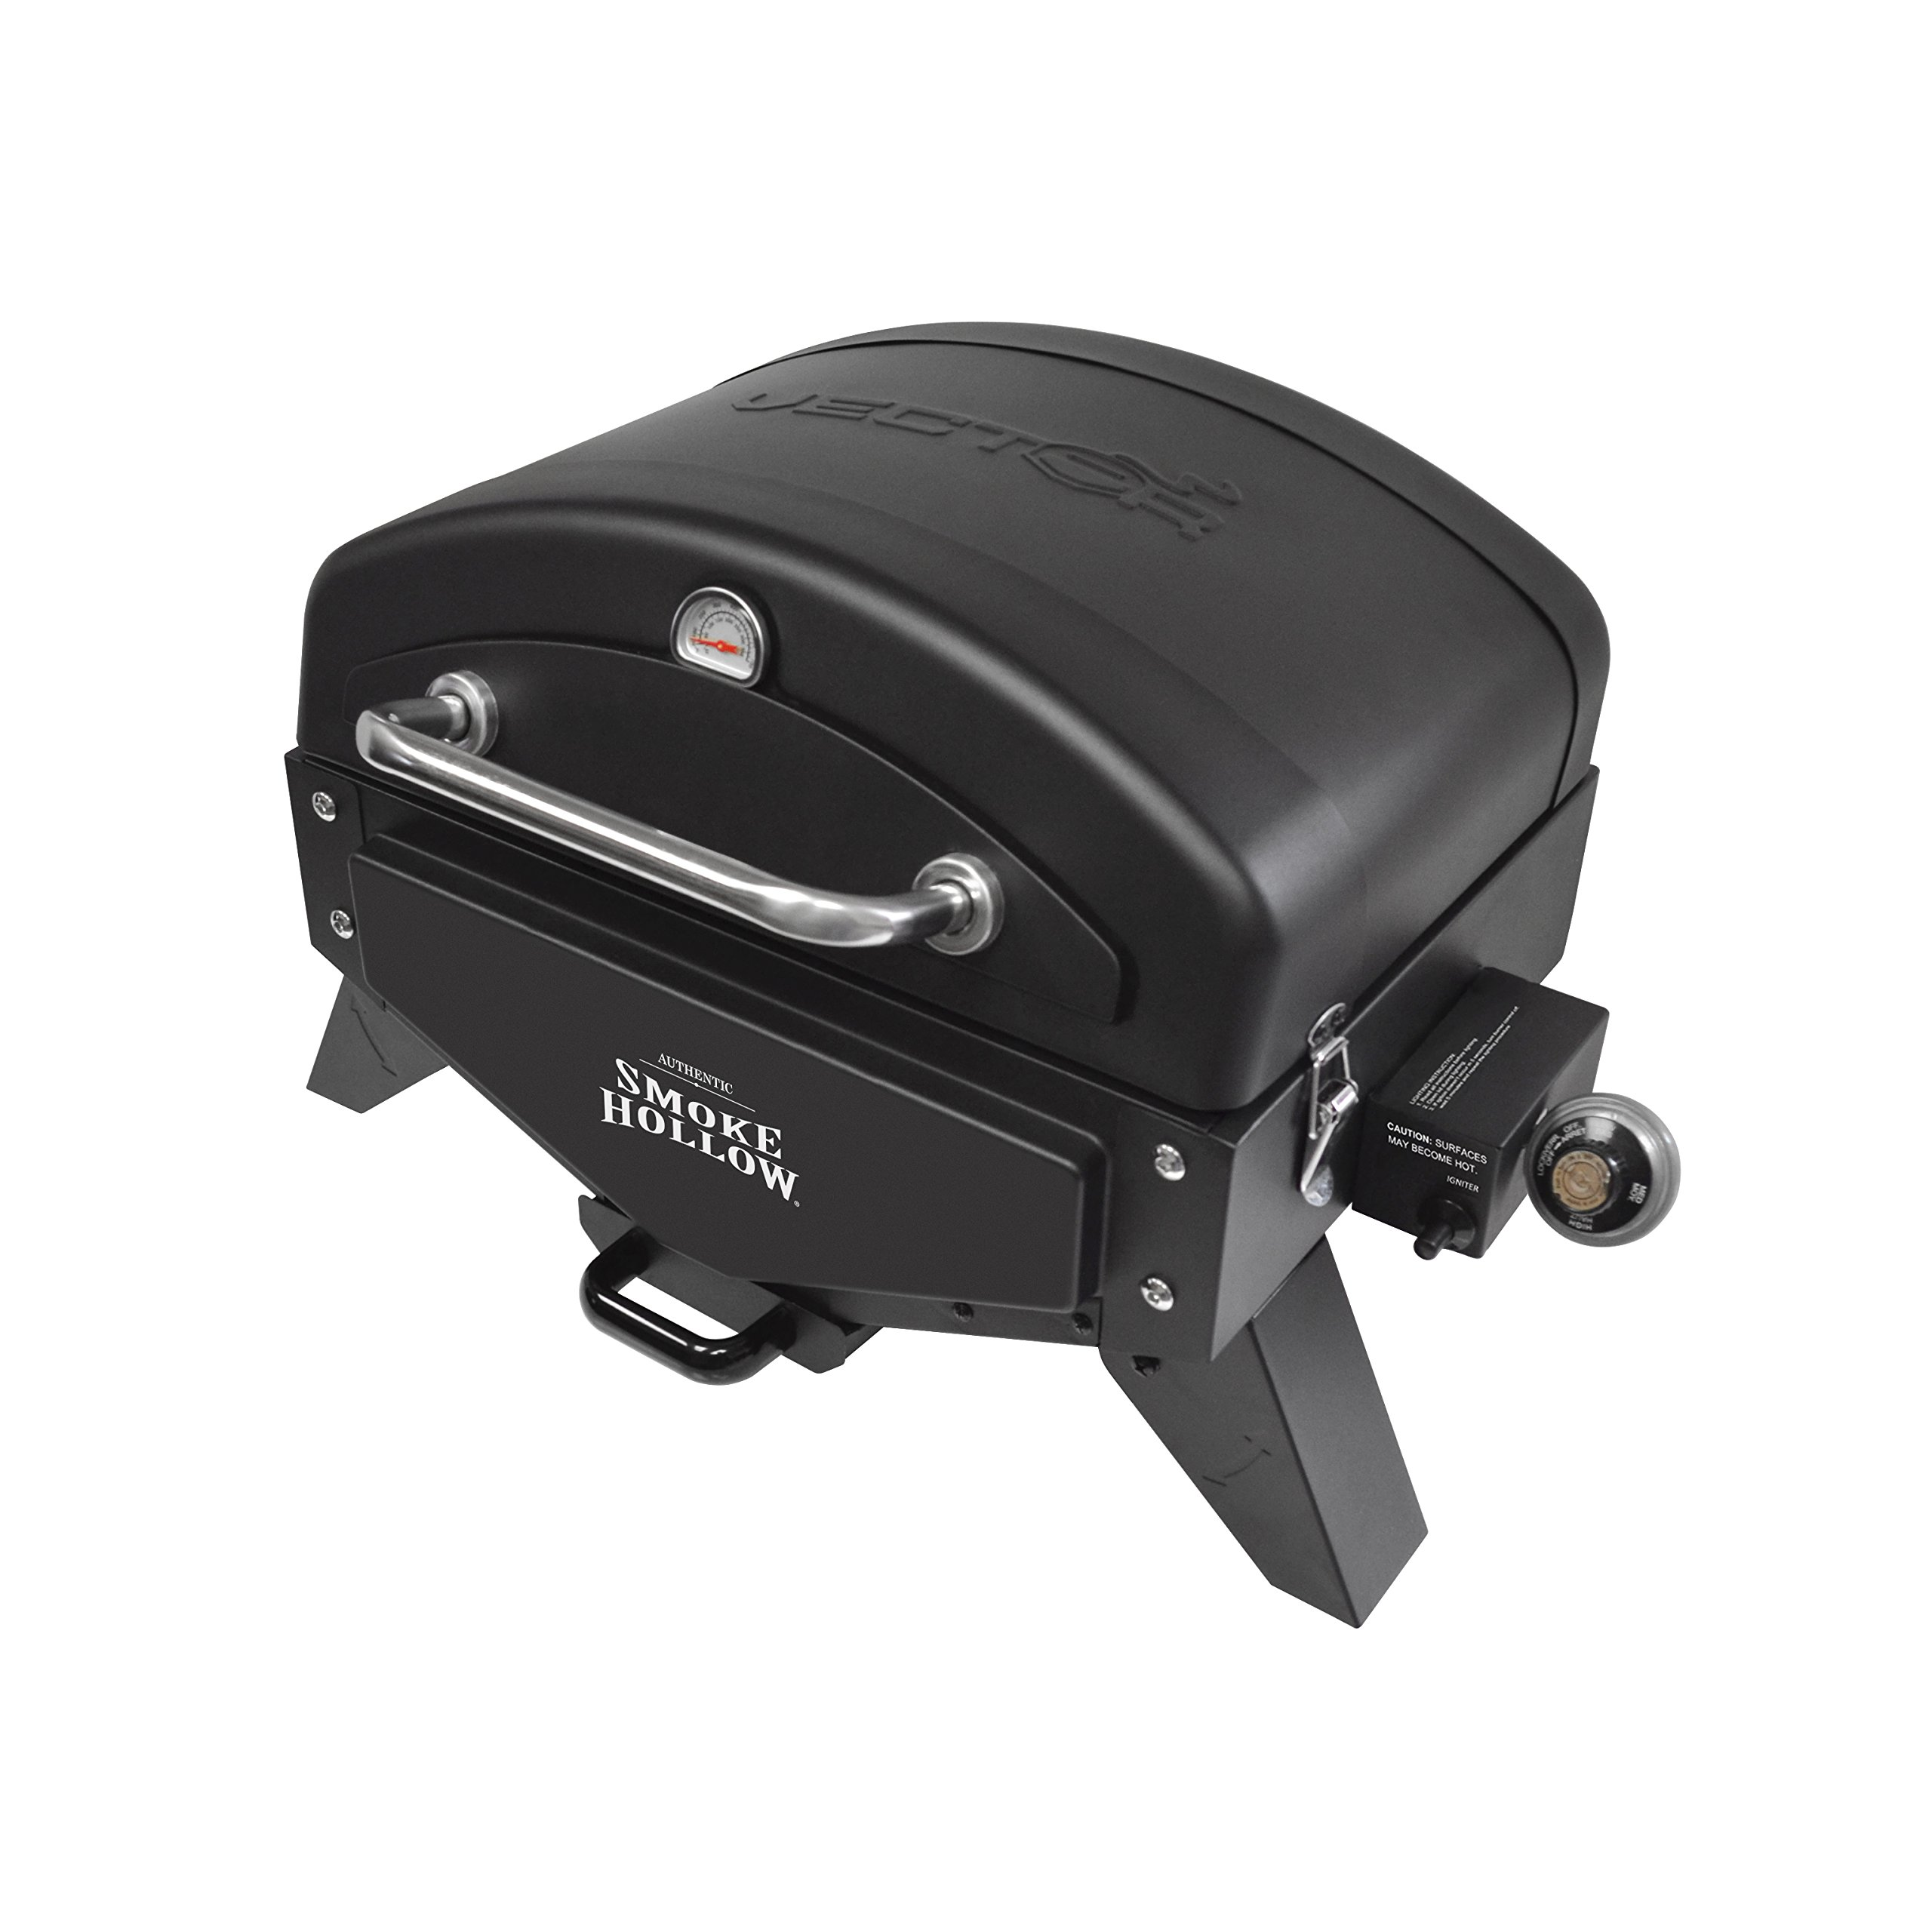 Smoke Hollow VT280B1 Vector Series, Portable Table Top Propane Gas Grill with Warming Rack, 367 sq. inches of Cooking Area, Dimensions: 25.25'' W x 19.5'' D x 16'' H